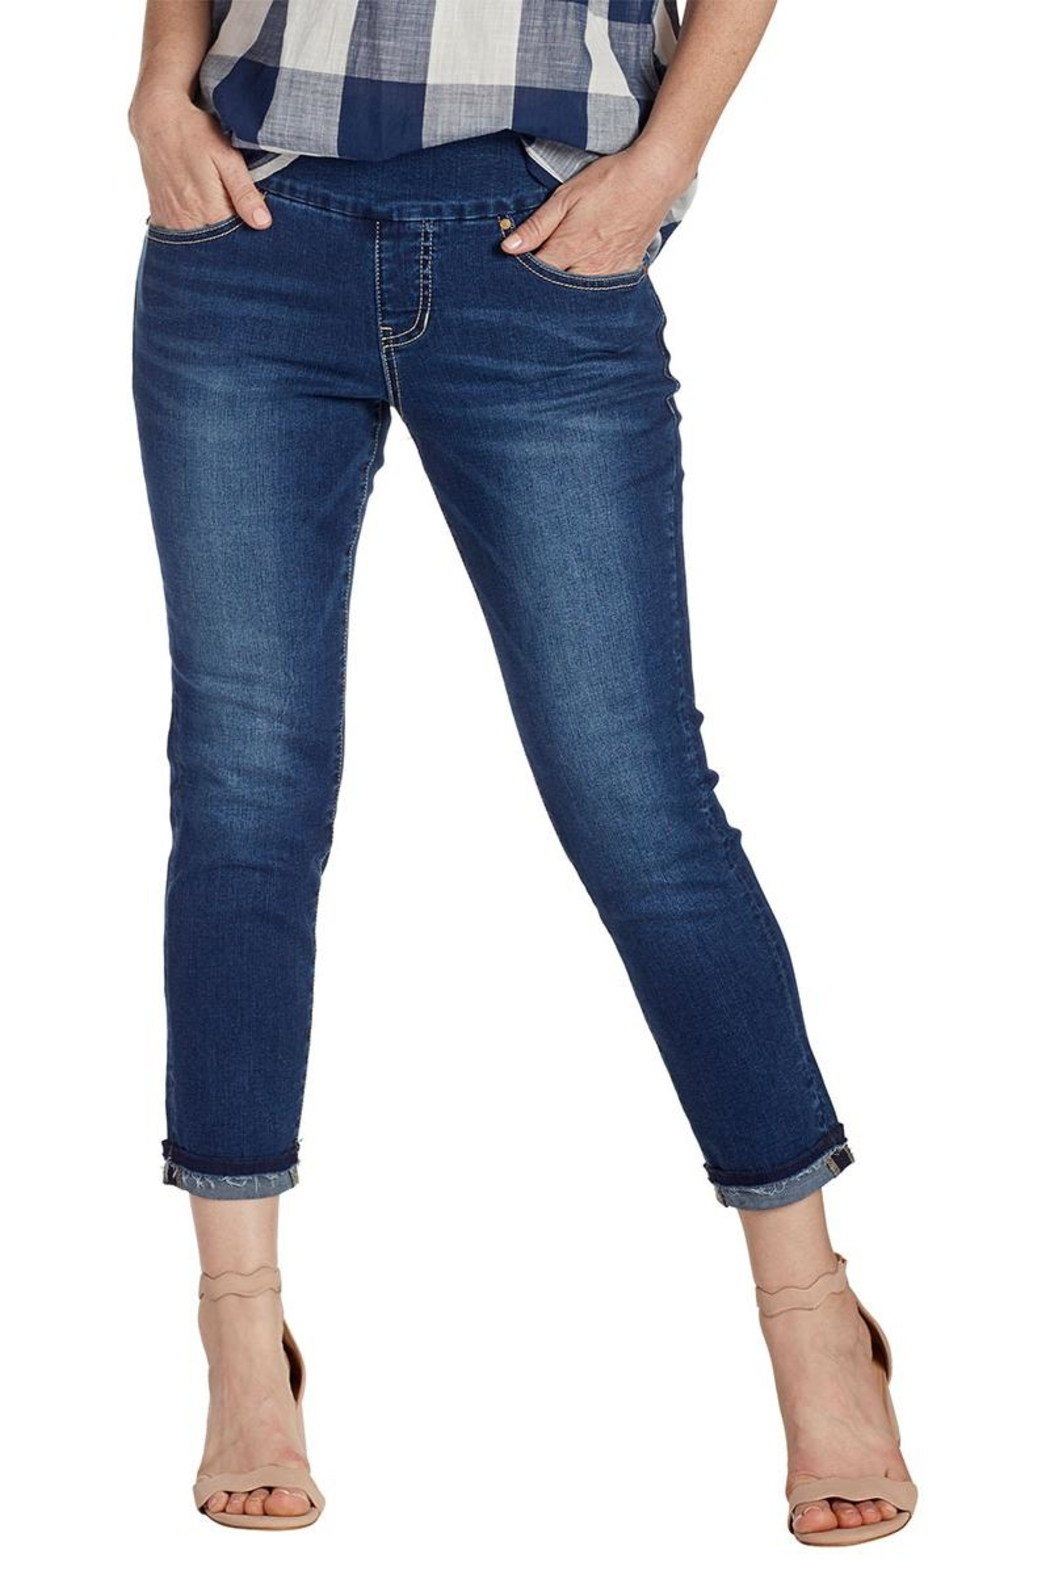 JAG Jeans Pull-On Ankle Jean - Main Image